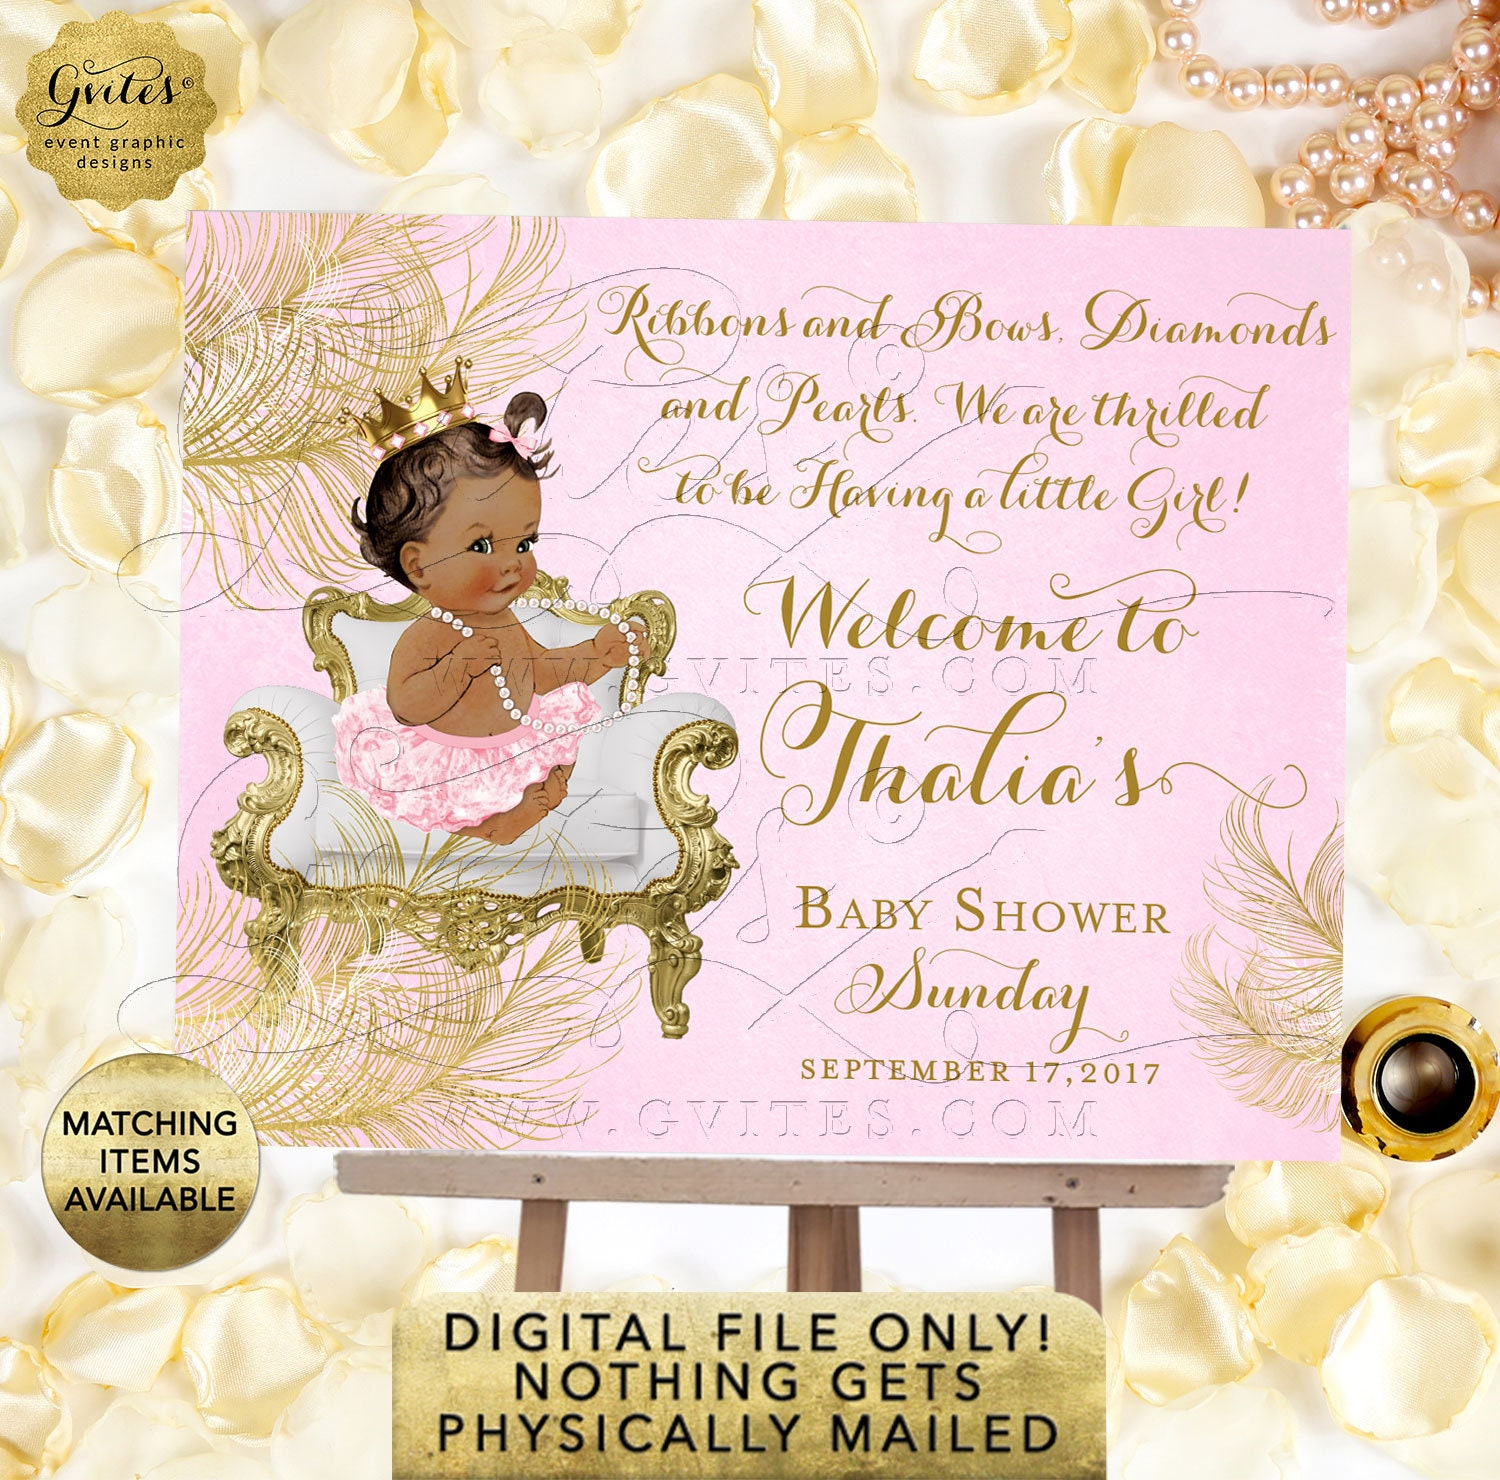 CWCHS-104 African American Gold Crown {White Gold Feathers} Design Princess Birthday Invitation Pink Gold Diamonds Pearls